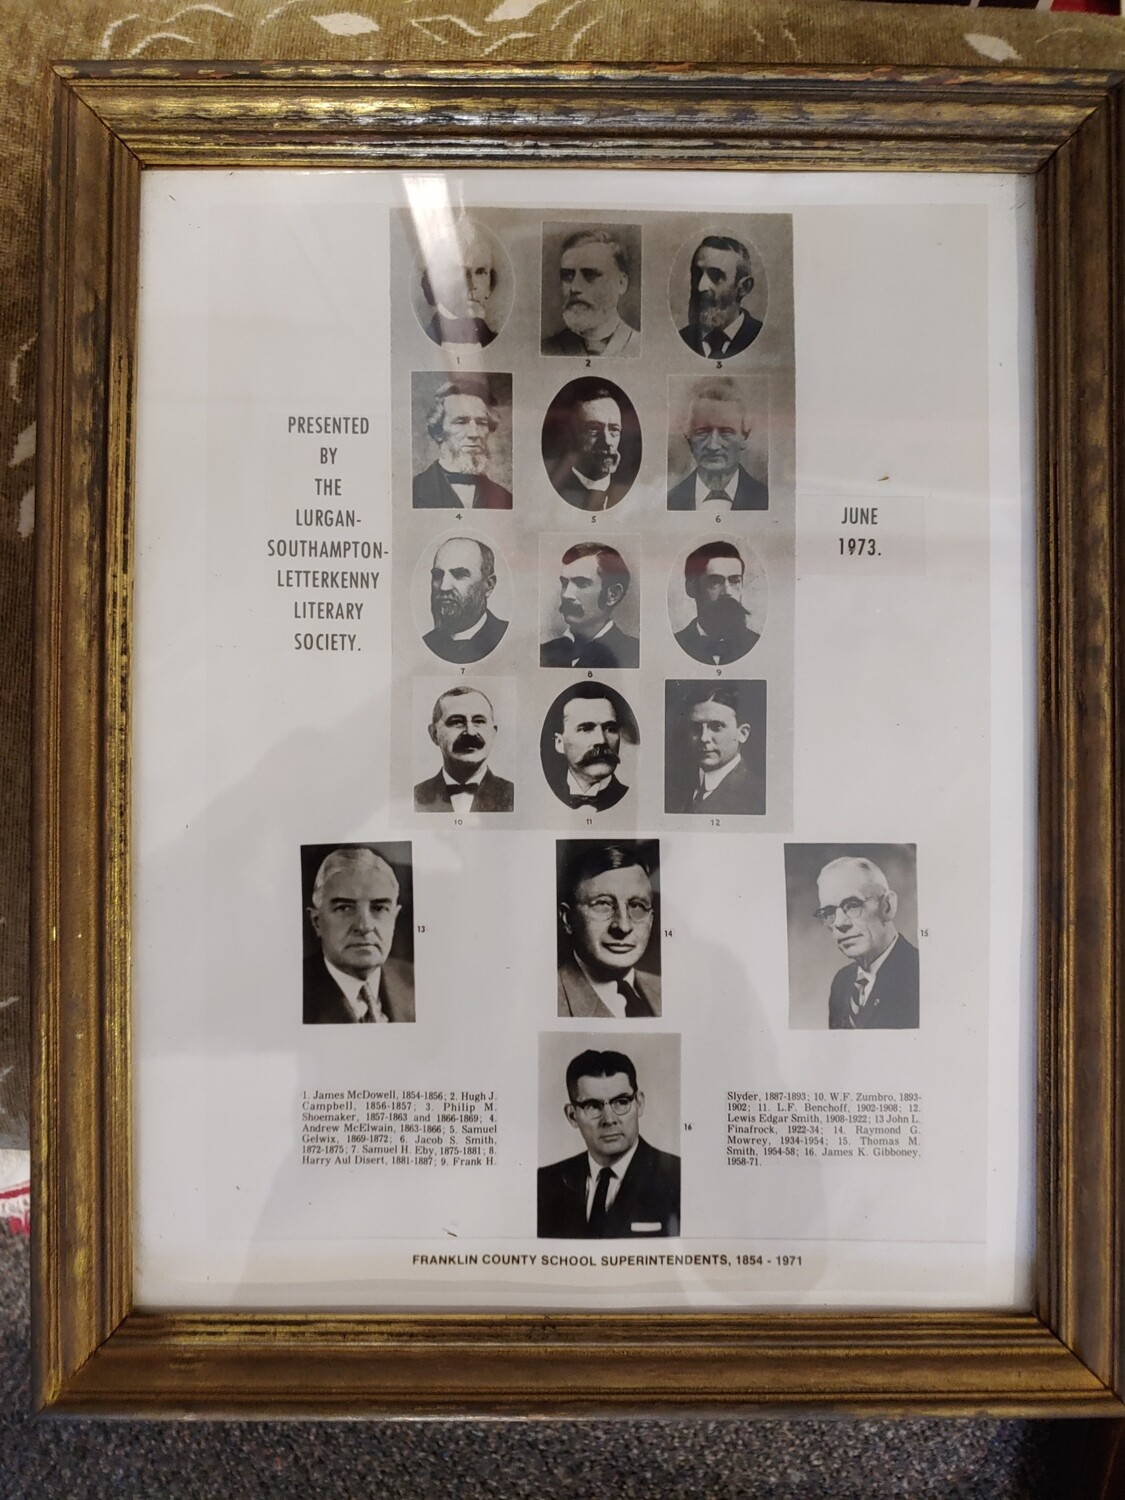 Franklin County Superintendents Framed Photo